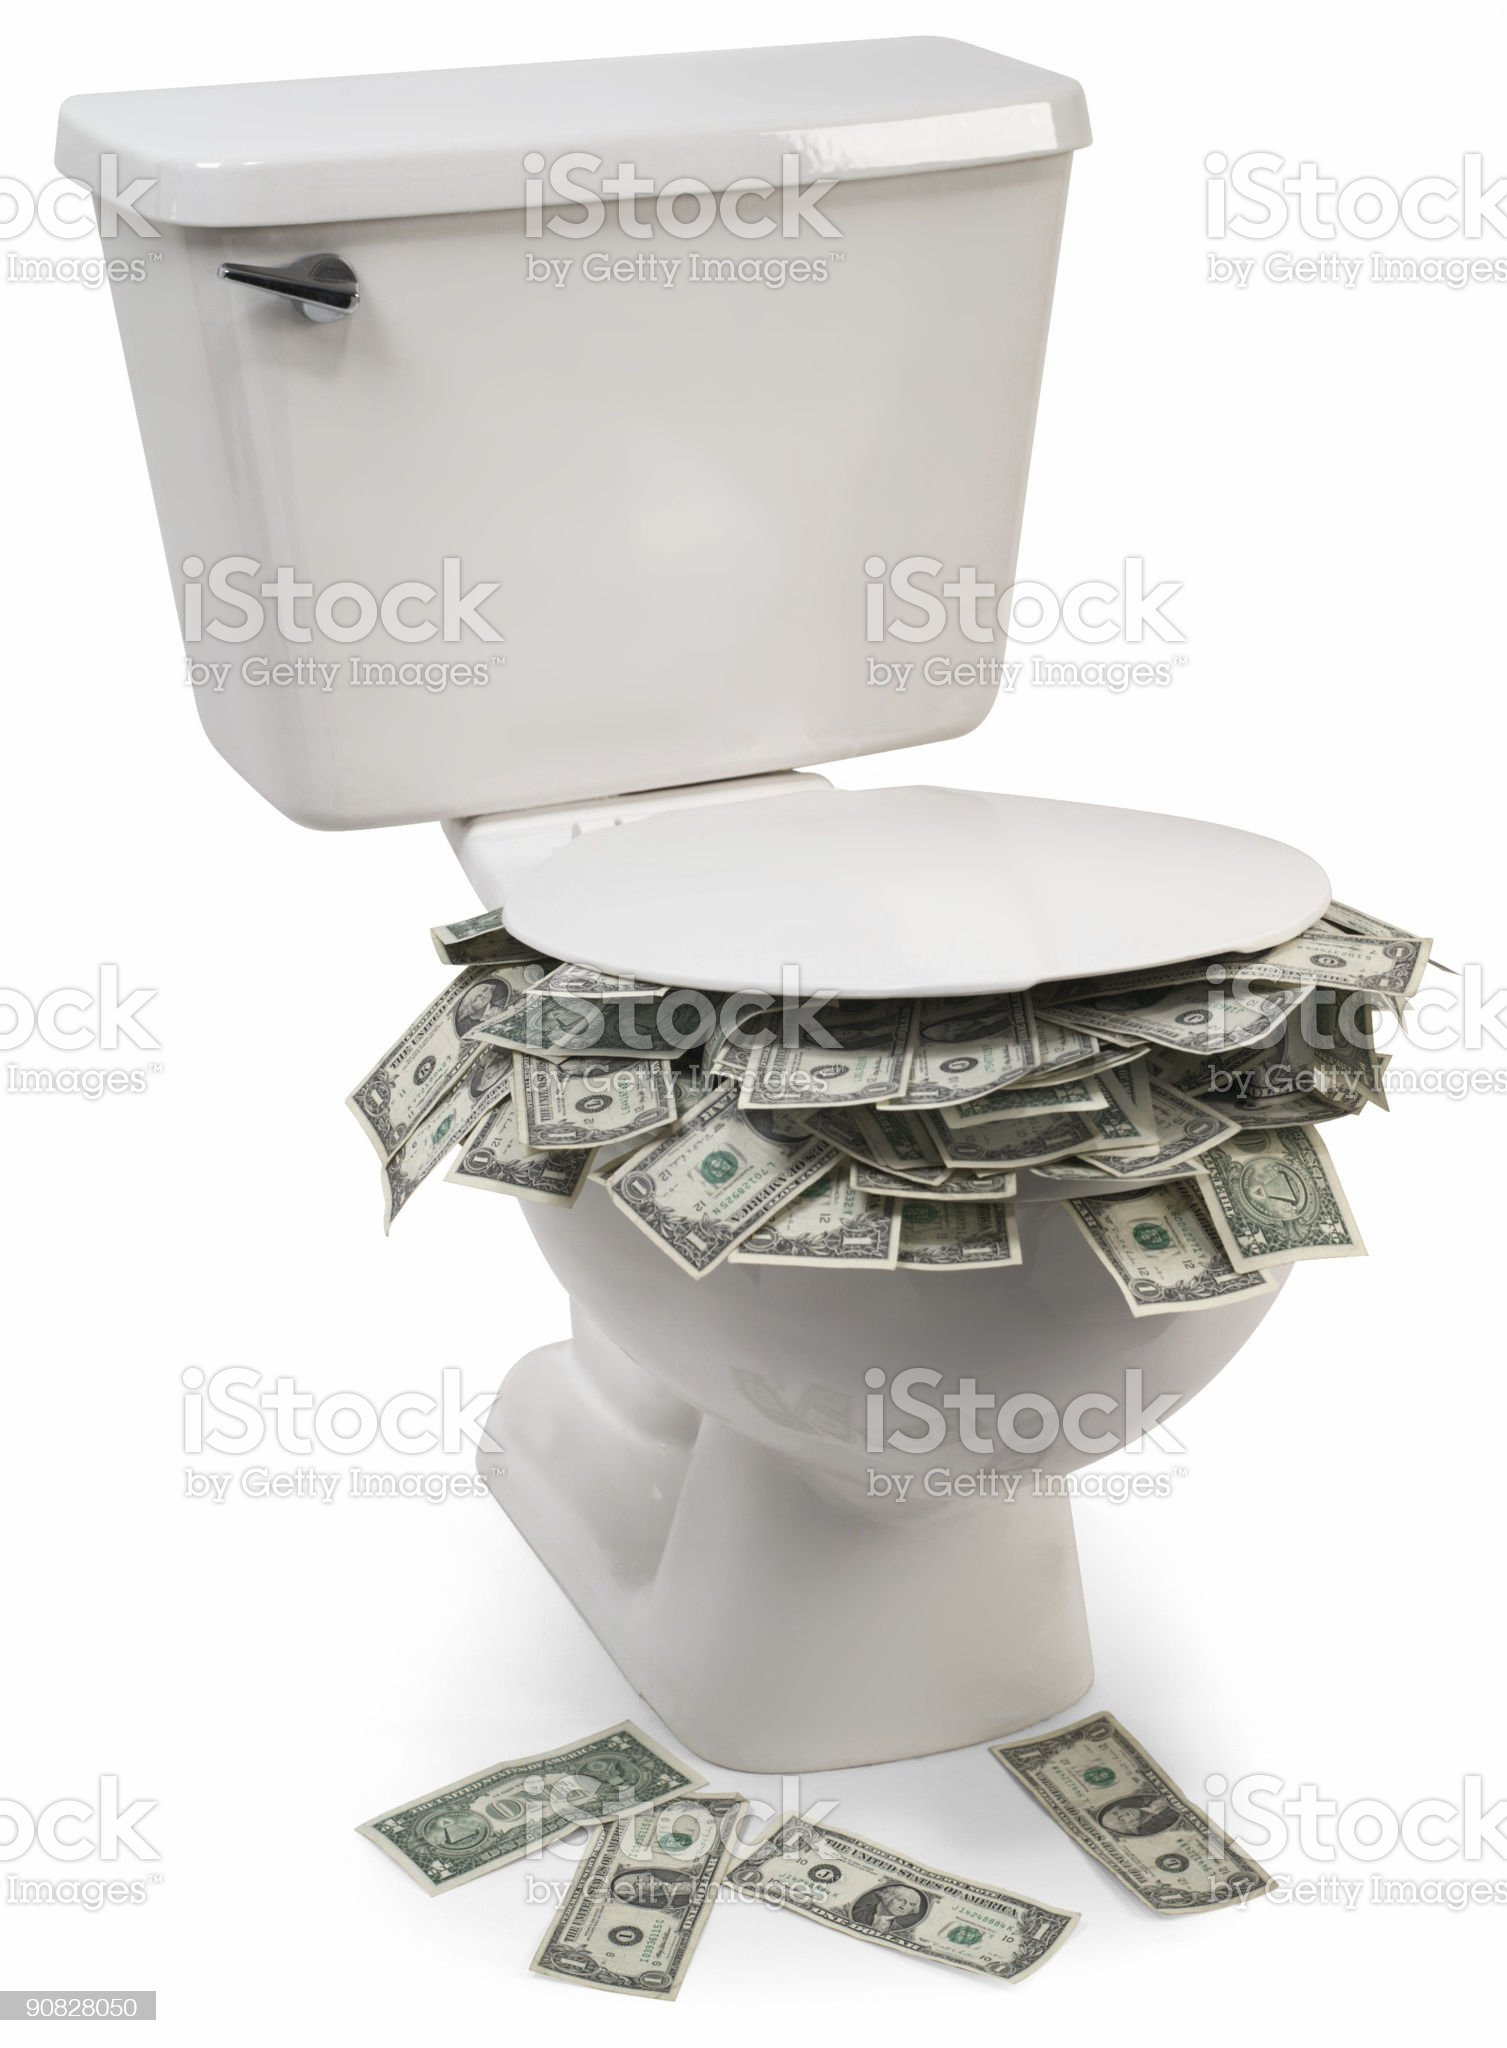 Flush with cash royalty-free stock photo